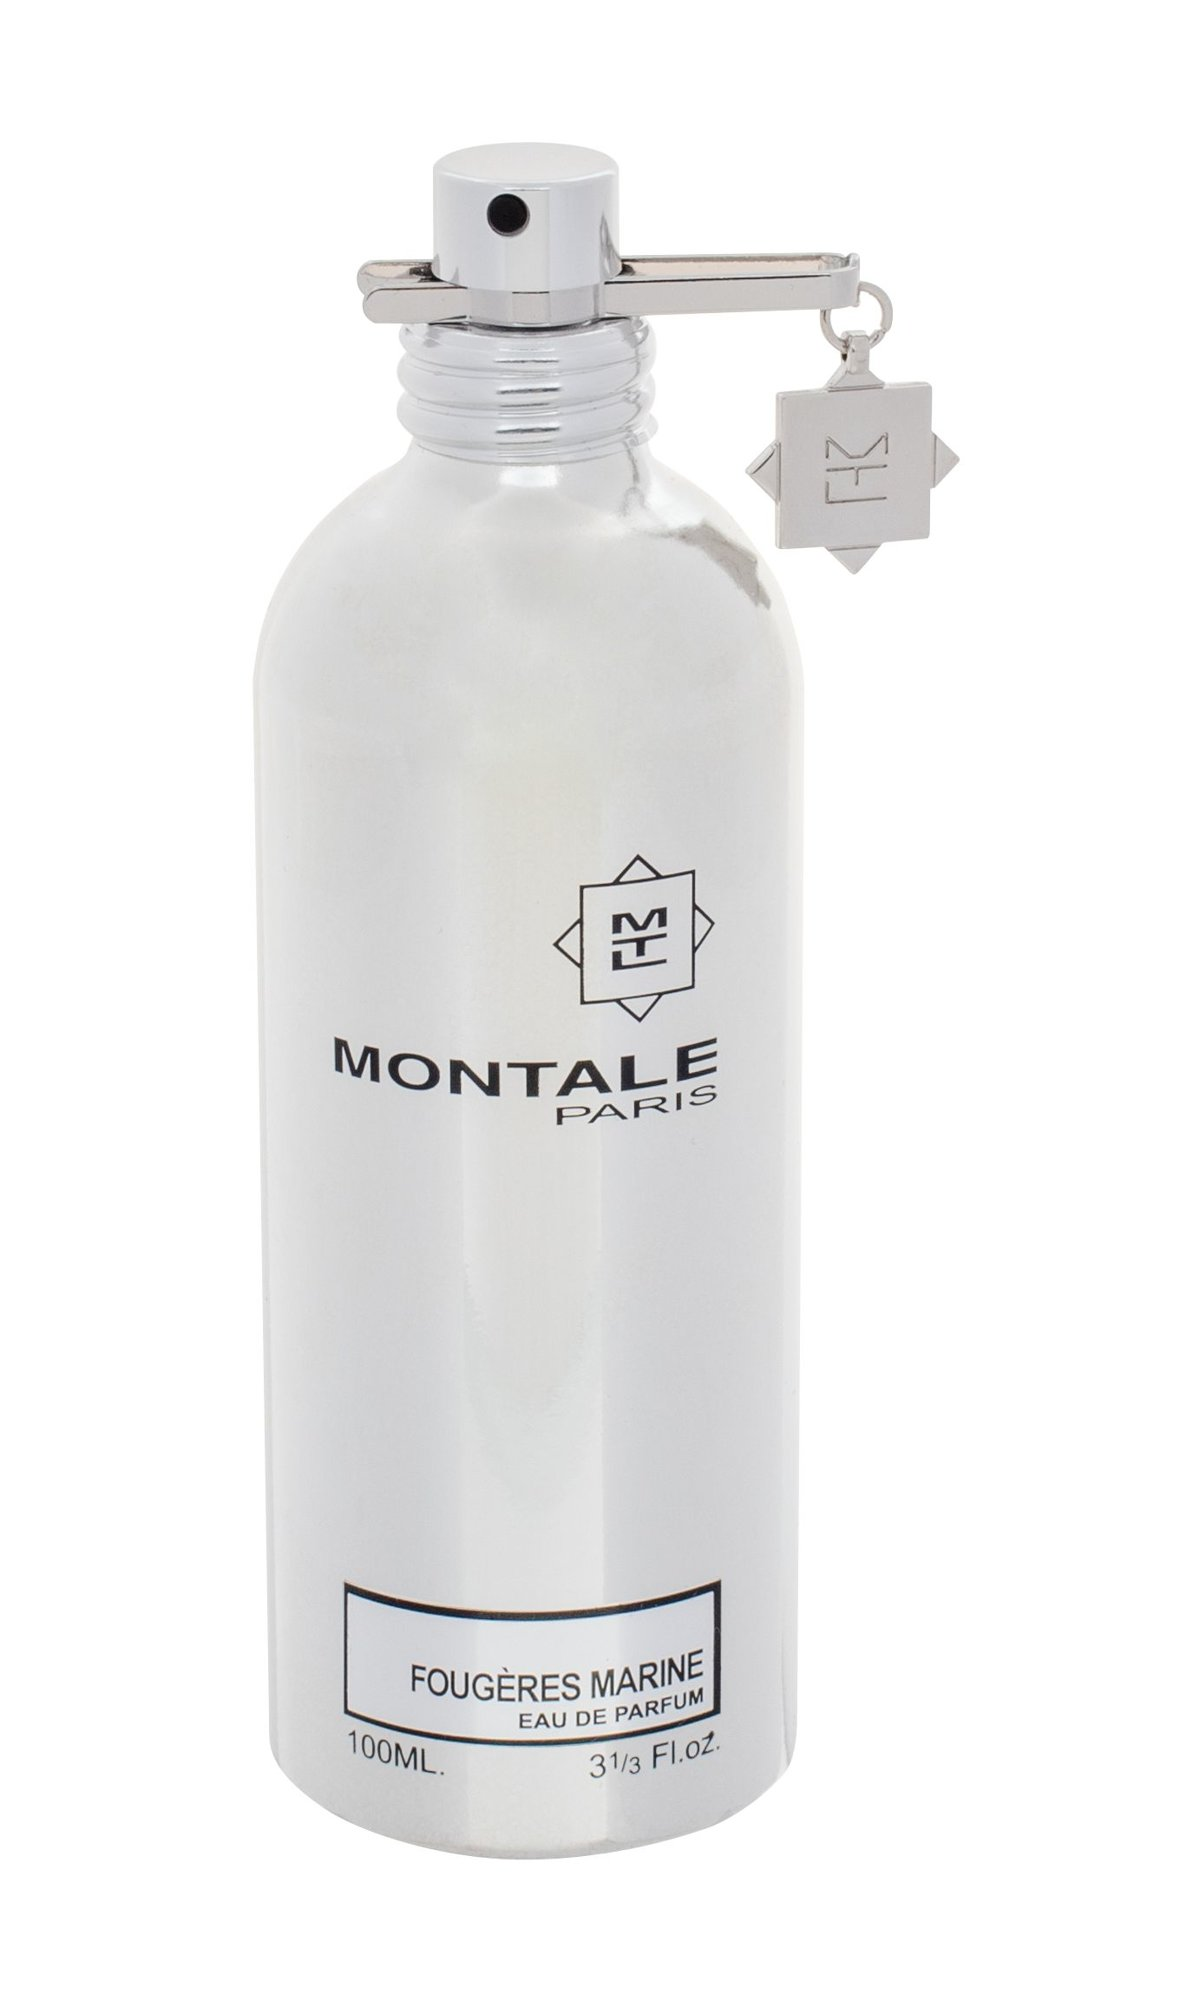 Montale Paris Fougeres Marine EDP 100ml